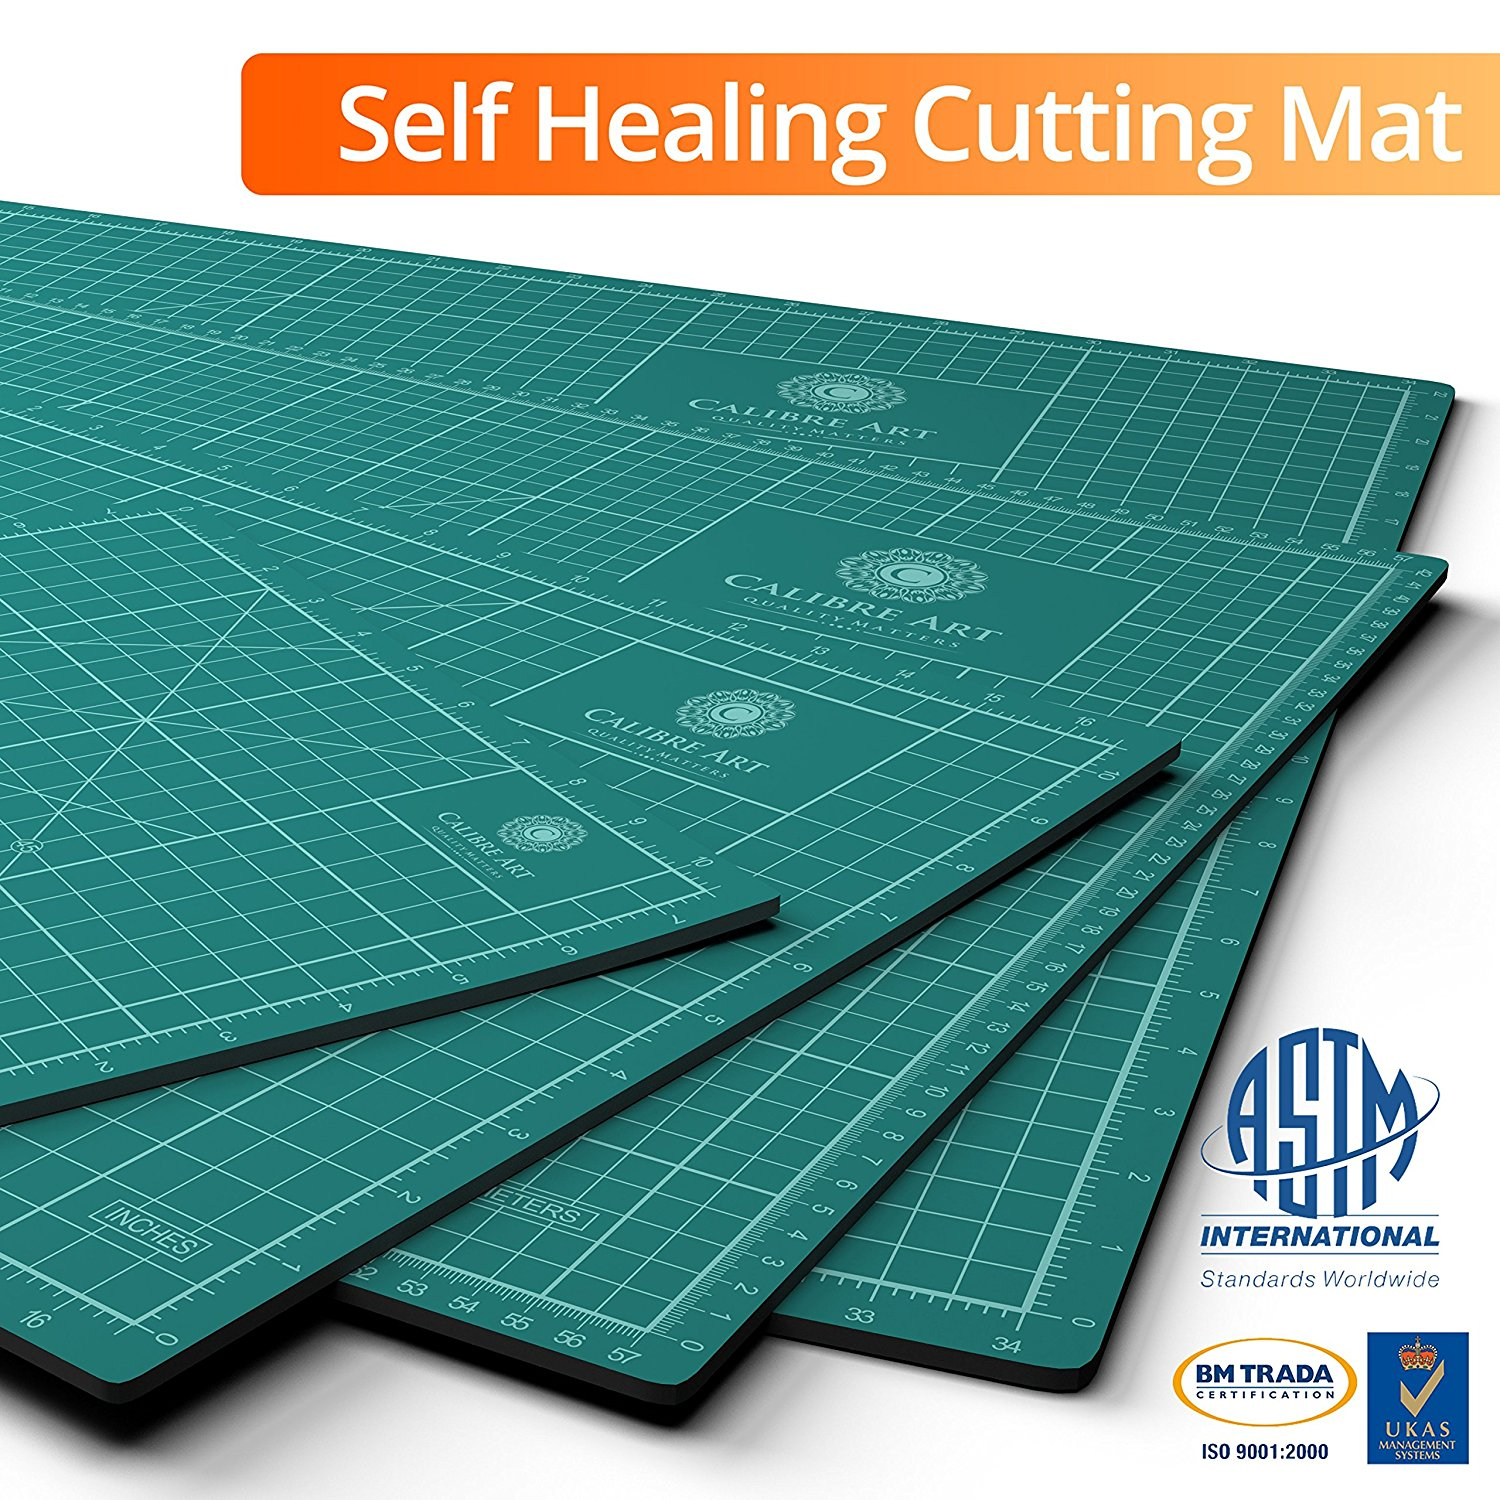 Calibri art mat GiveawayValue $34.99 - Many thanks to Calibri for a giveaway everyone needs.... a self healing cutting mat, 12 x 18, a perfect size for workshops and coffee mornings at a friend's place. To enter please click the rafflecopter link. This link will only last for one day. It will go live on October 3rd and finish on October 4th.